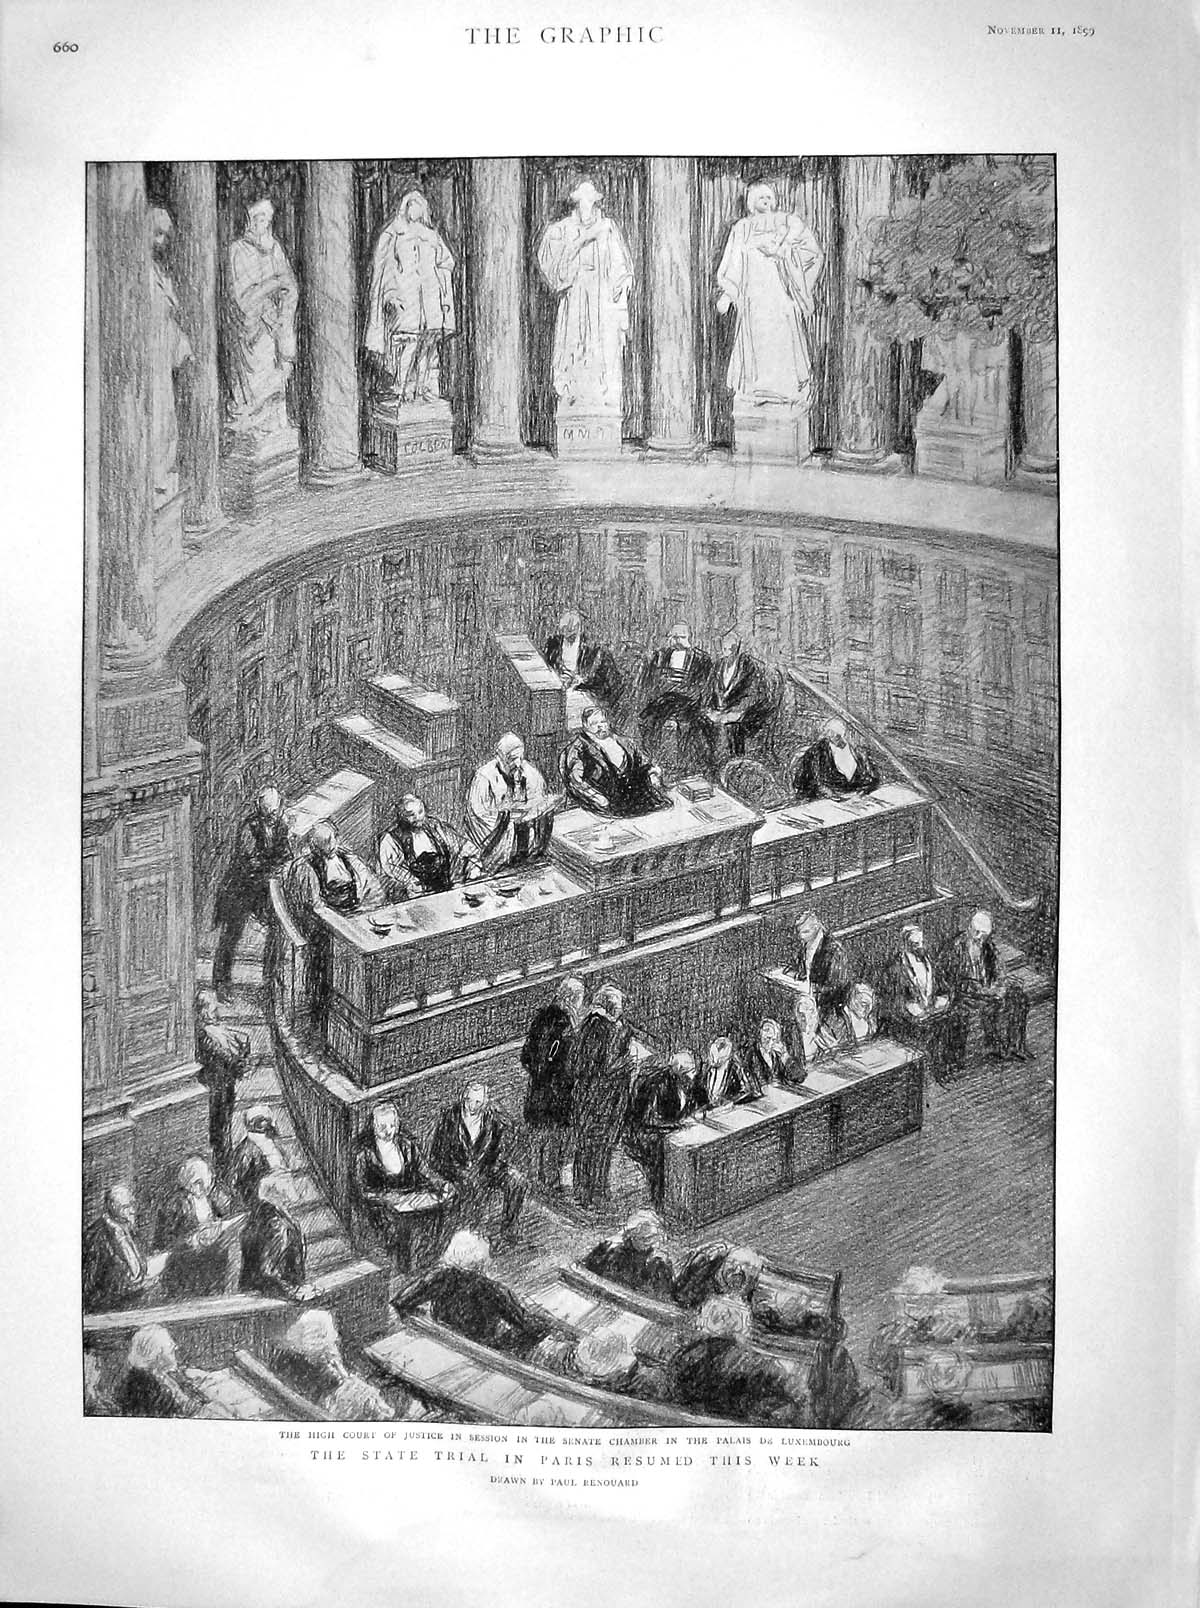 [Print 1899 High Court Justice Senate Chamber Paris Luxembourg 660M160 Old Original]